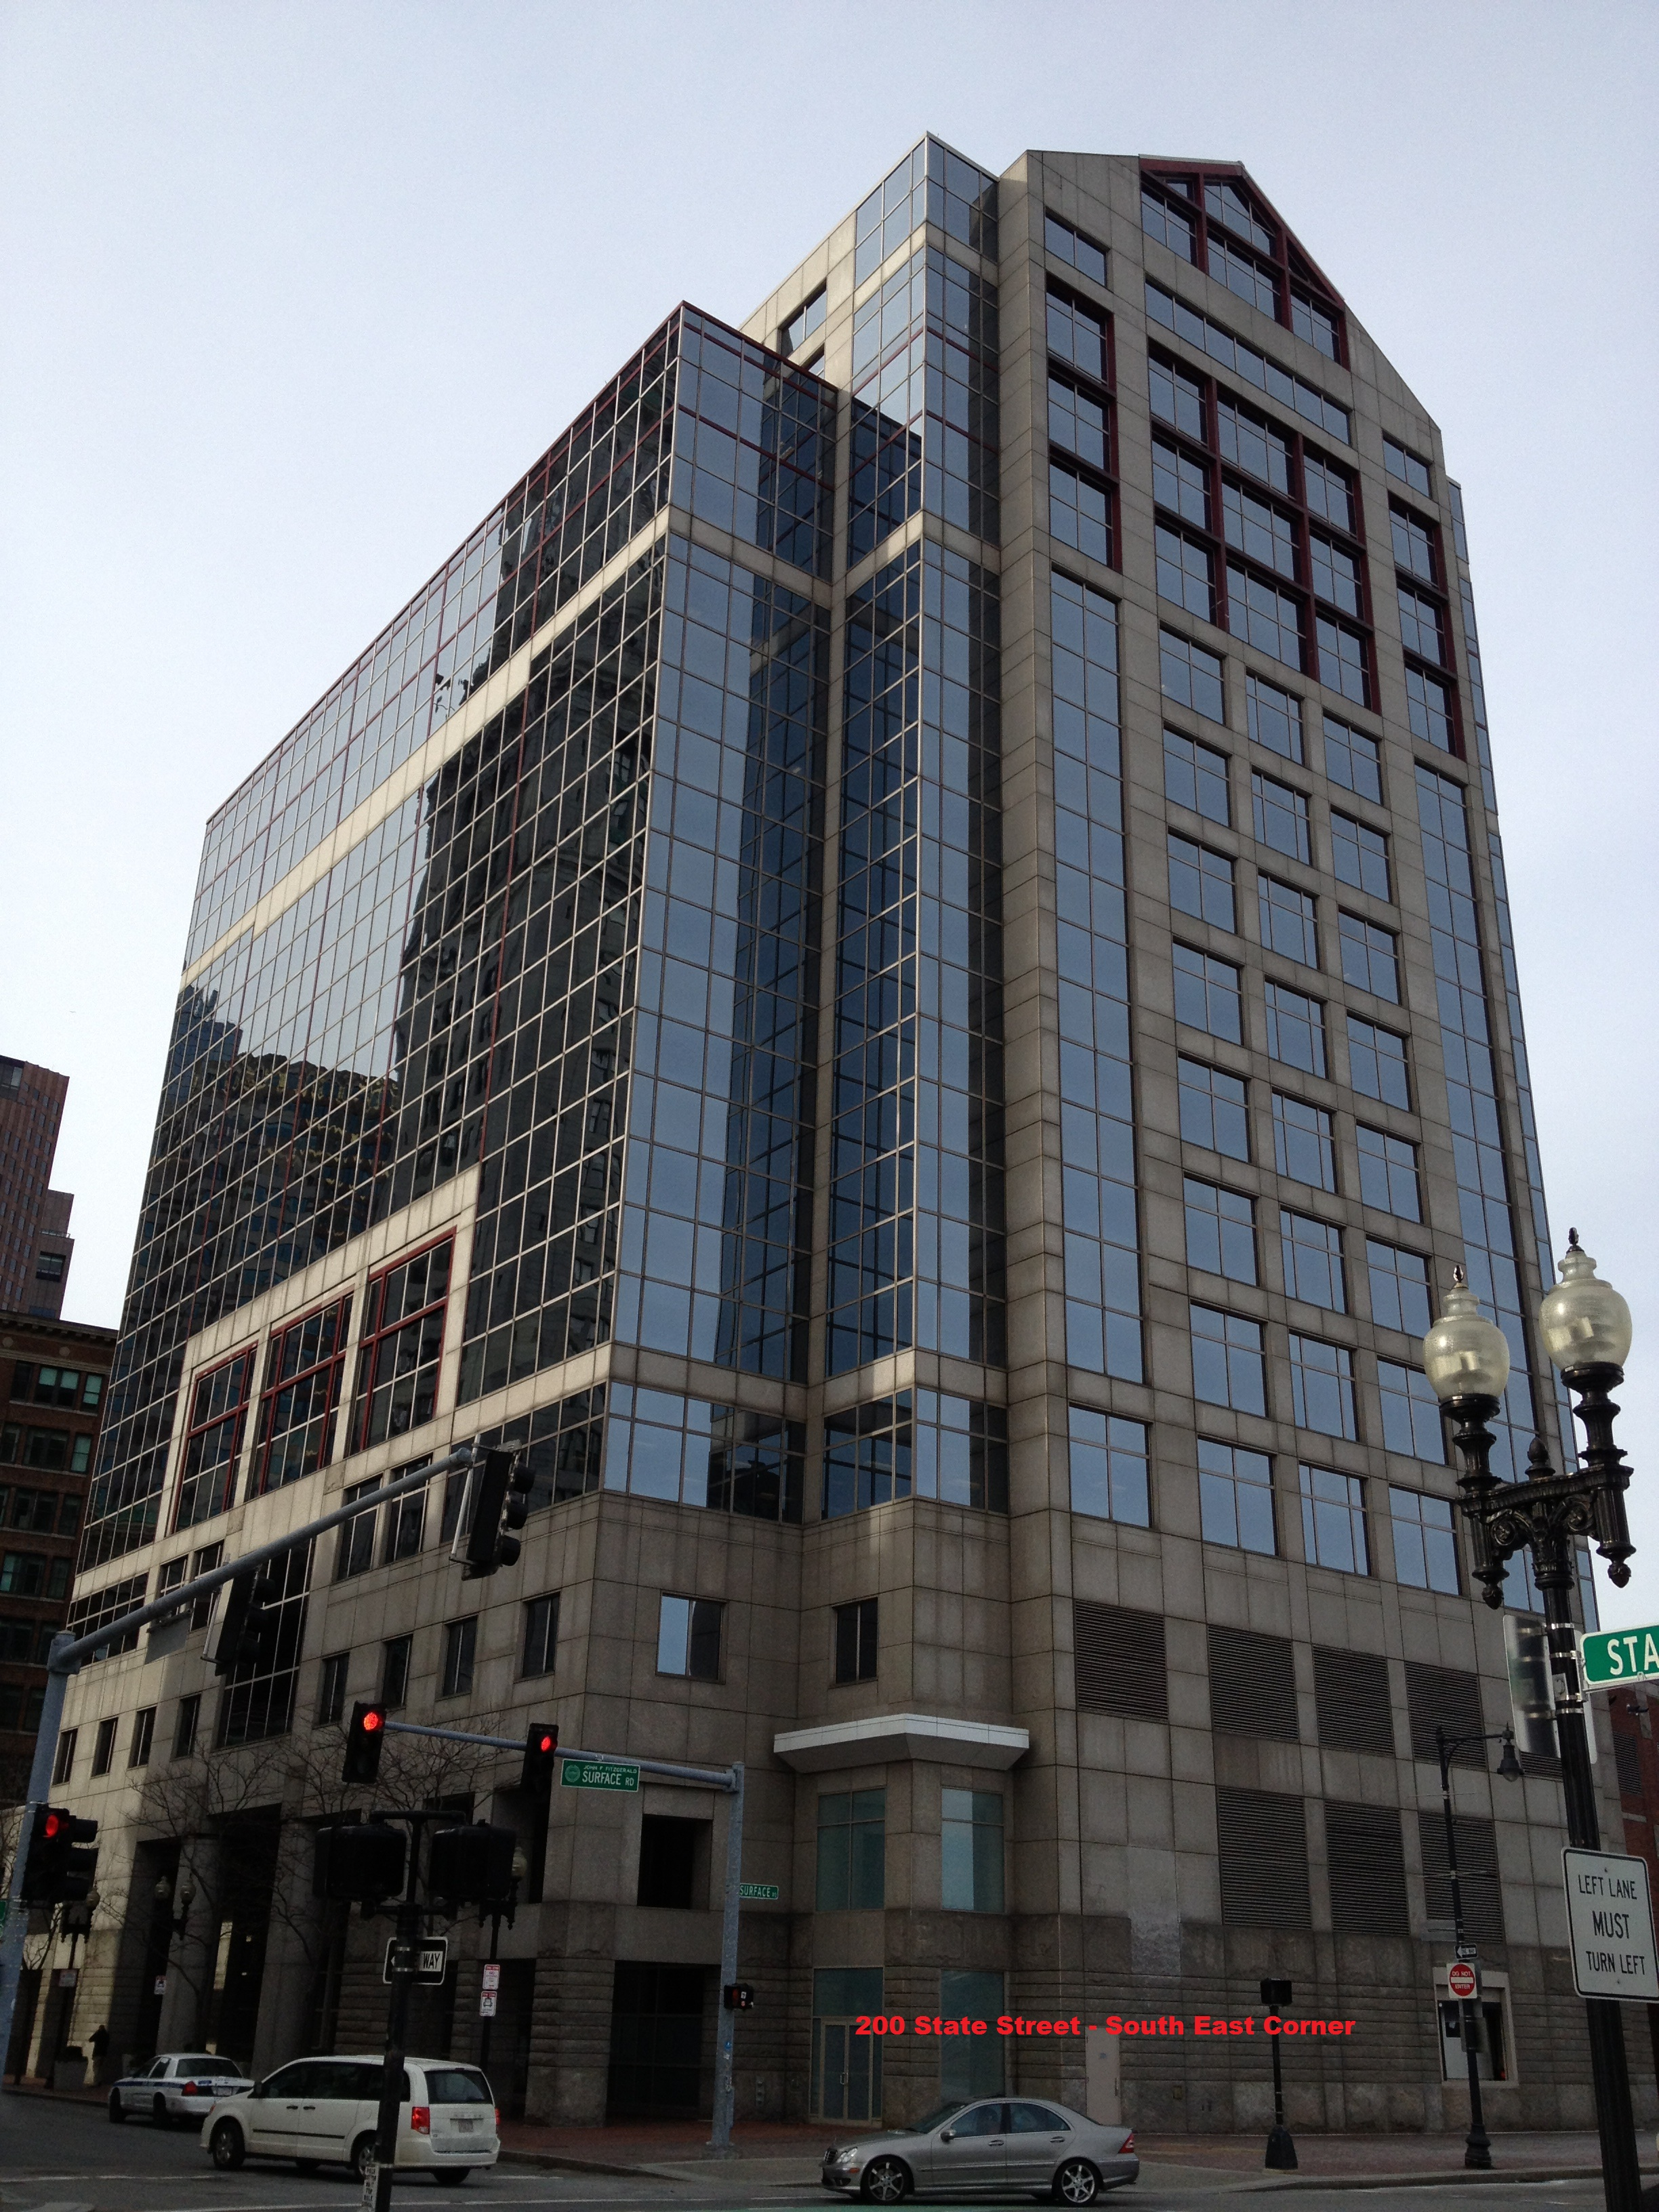 Leed Eb Gold Certification Is Awarded To 200 State Street In Boston